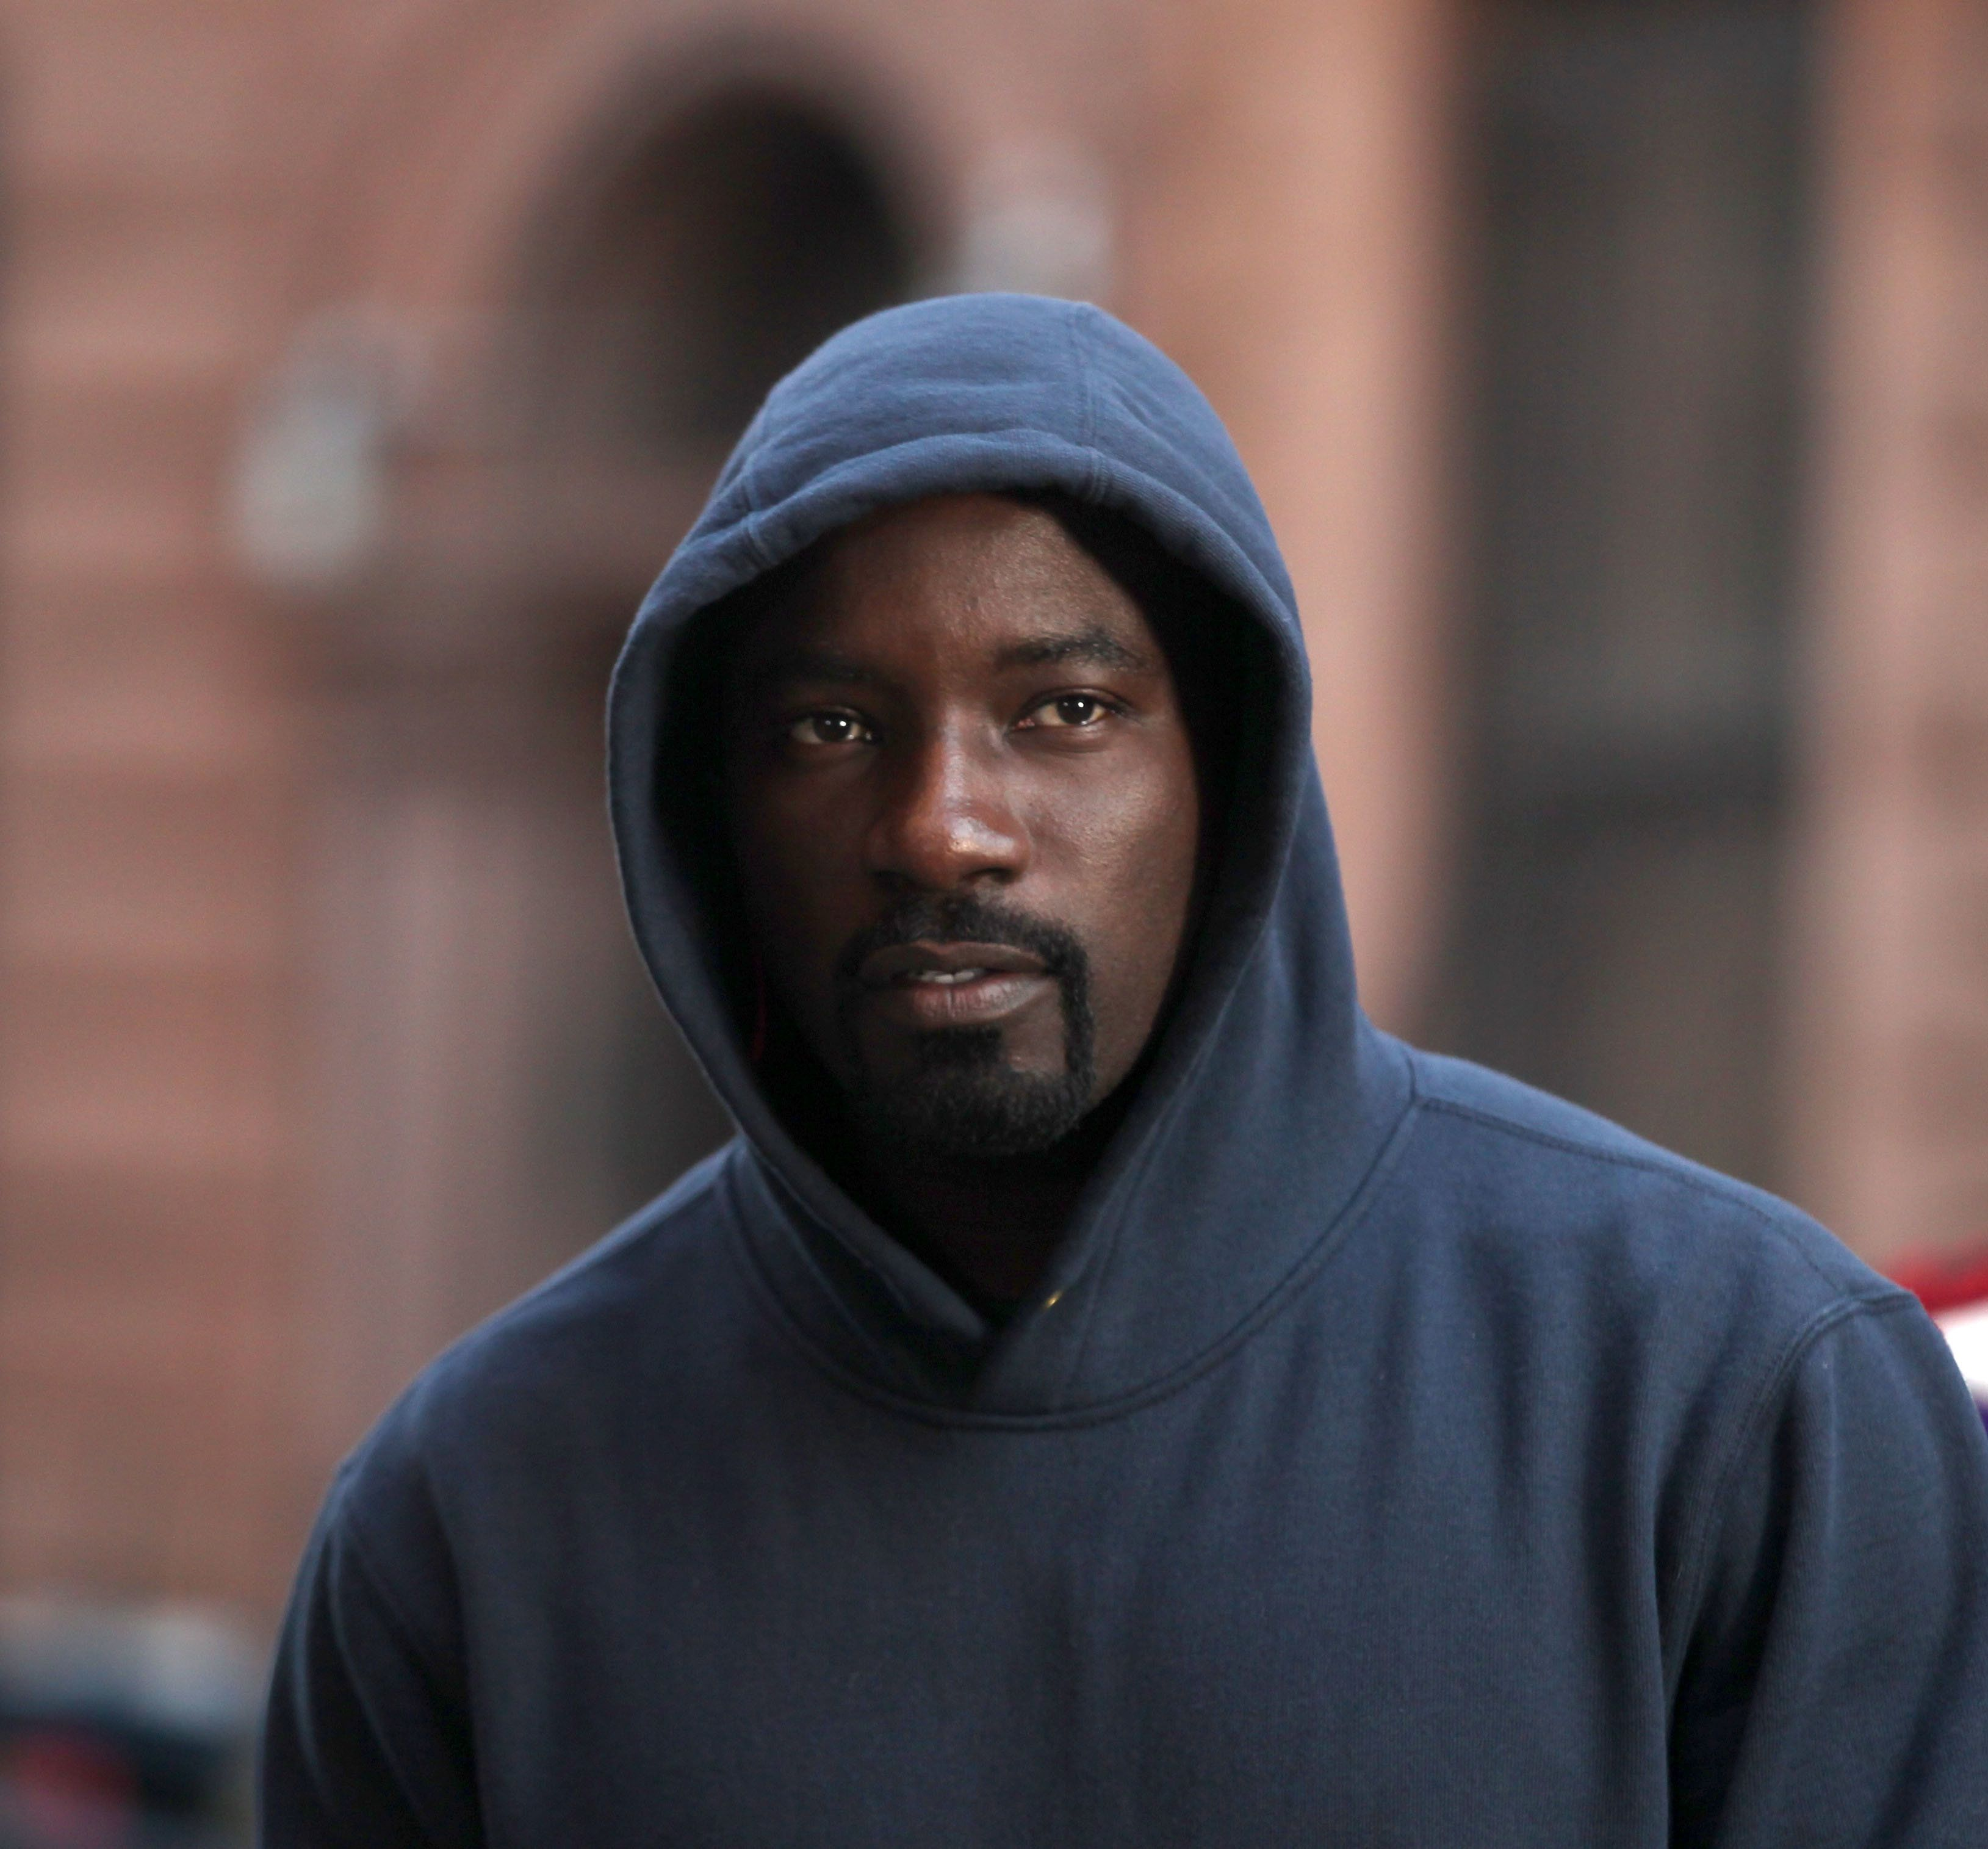 NEW YORK, NY - DECEMBER 02:  Mike Colter filming 'Marvel / Netflix's 'Luke Cage' on December 2, 2015 in New York City.  (Photo by Steve Sands/GC Images)